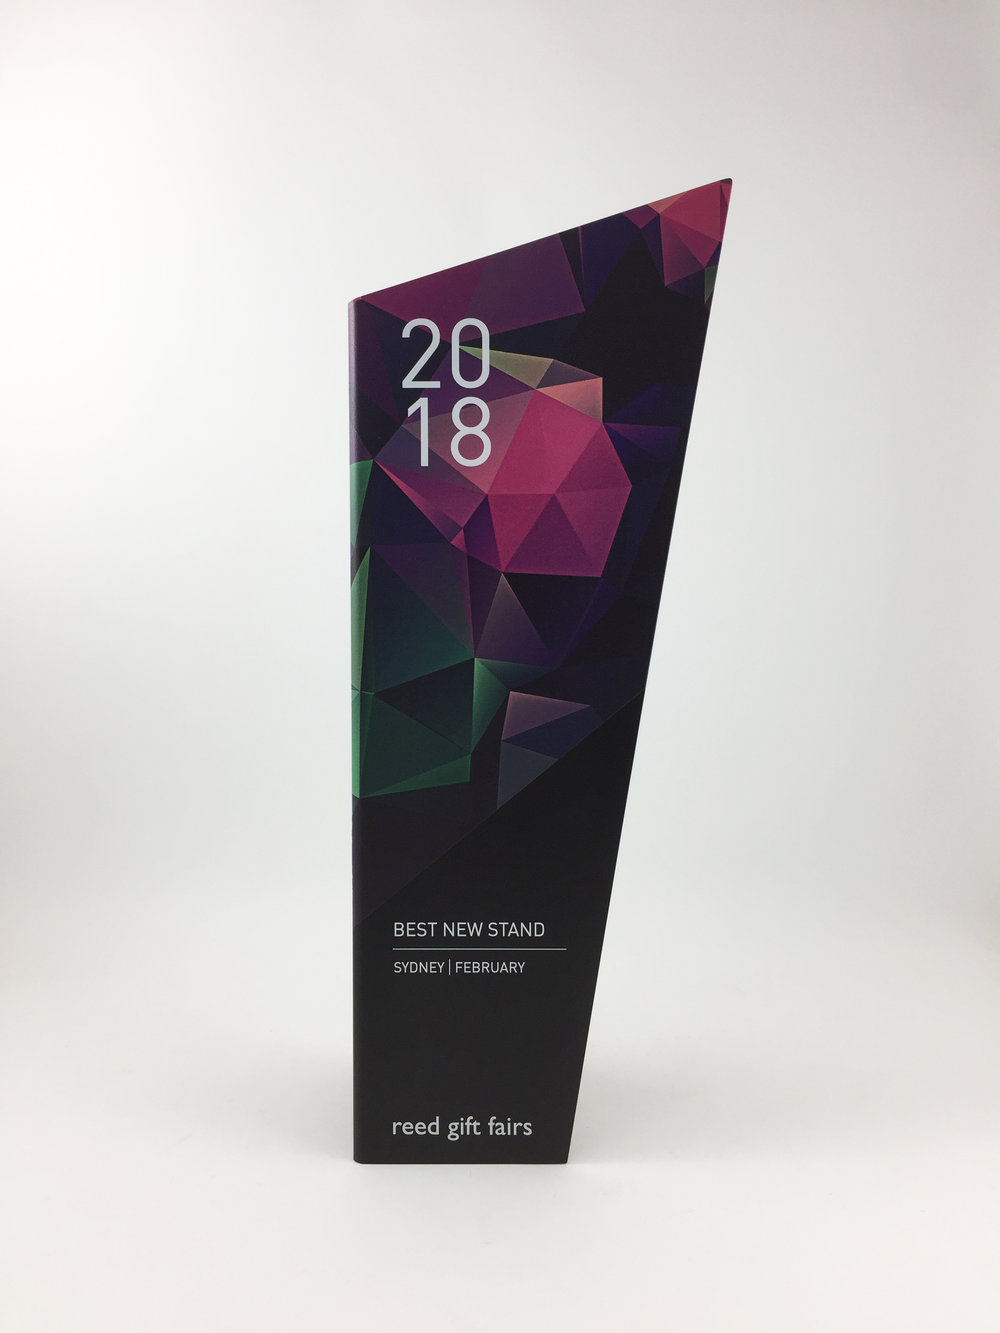 reed-gift-fairs-graphic-print-aluminium-trophy-award-02.jpg